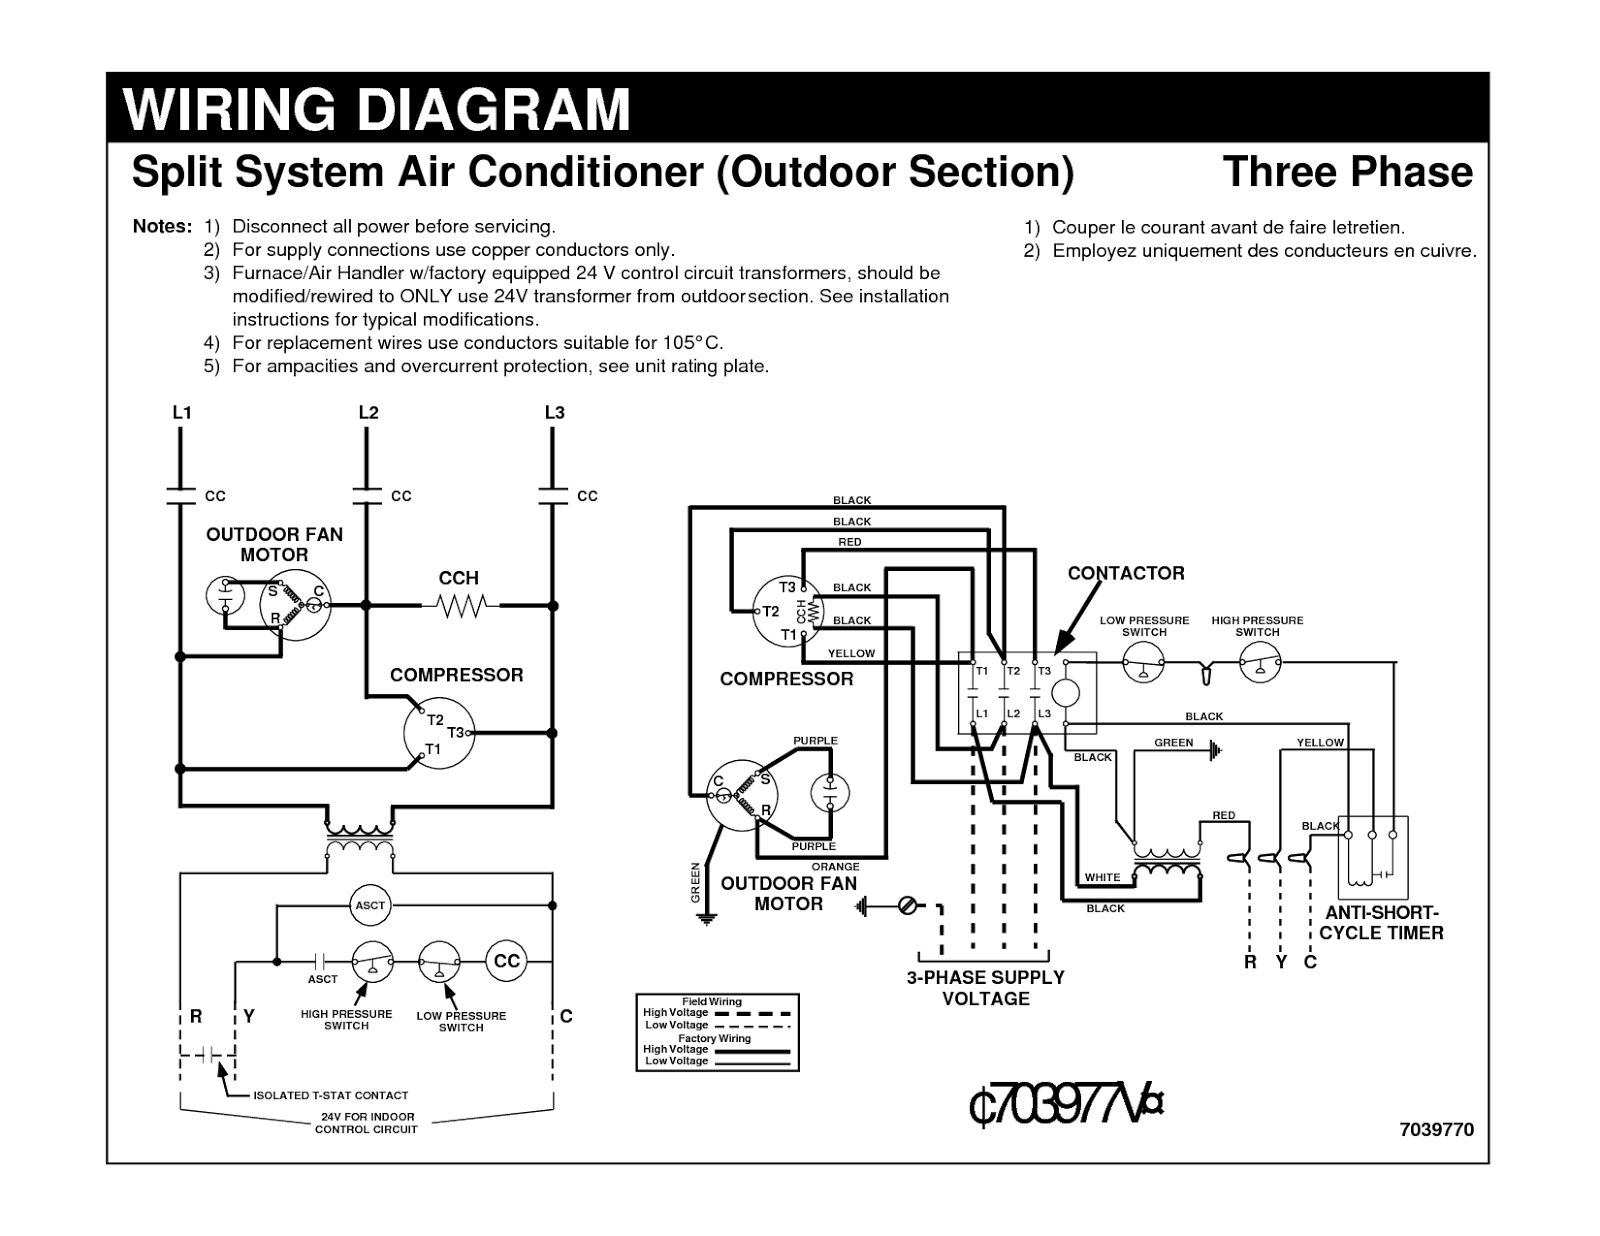 Air Conditioner Wiring Diagrams - Wiring Diagram Tri on electric heat pump wiring diagram, auto air conditioning wiring diagram, air conditioning unit system diagram, residential air conditioner service, residential air conditioner compressor, carrier heat pump wiring diagram, central air conditioning system diagram, residential air conditioning system diagram, ac fan motor wiring diagram, residential electrical wiring diagrams, split system ac wiring diagram, residential air conditioner capacitor, ac capacitor wiring diagram,